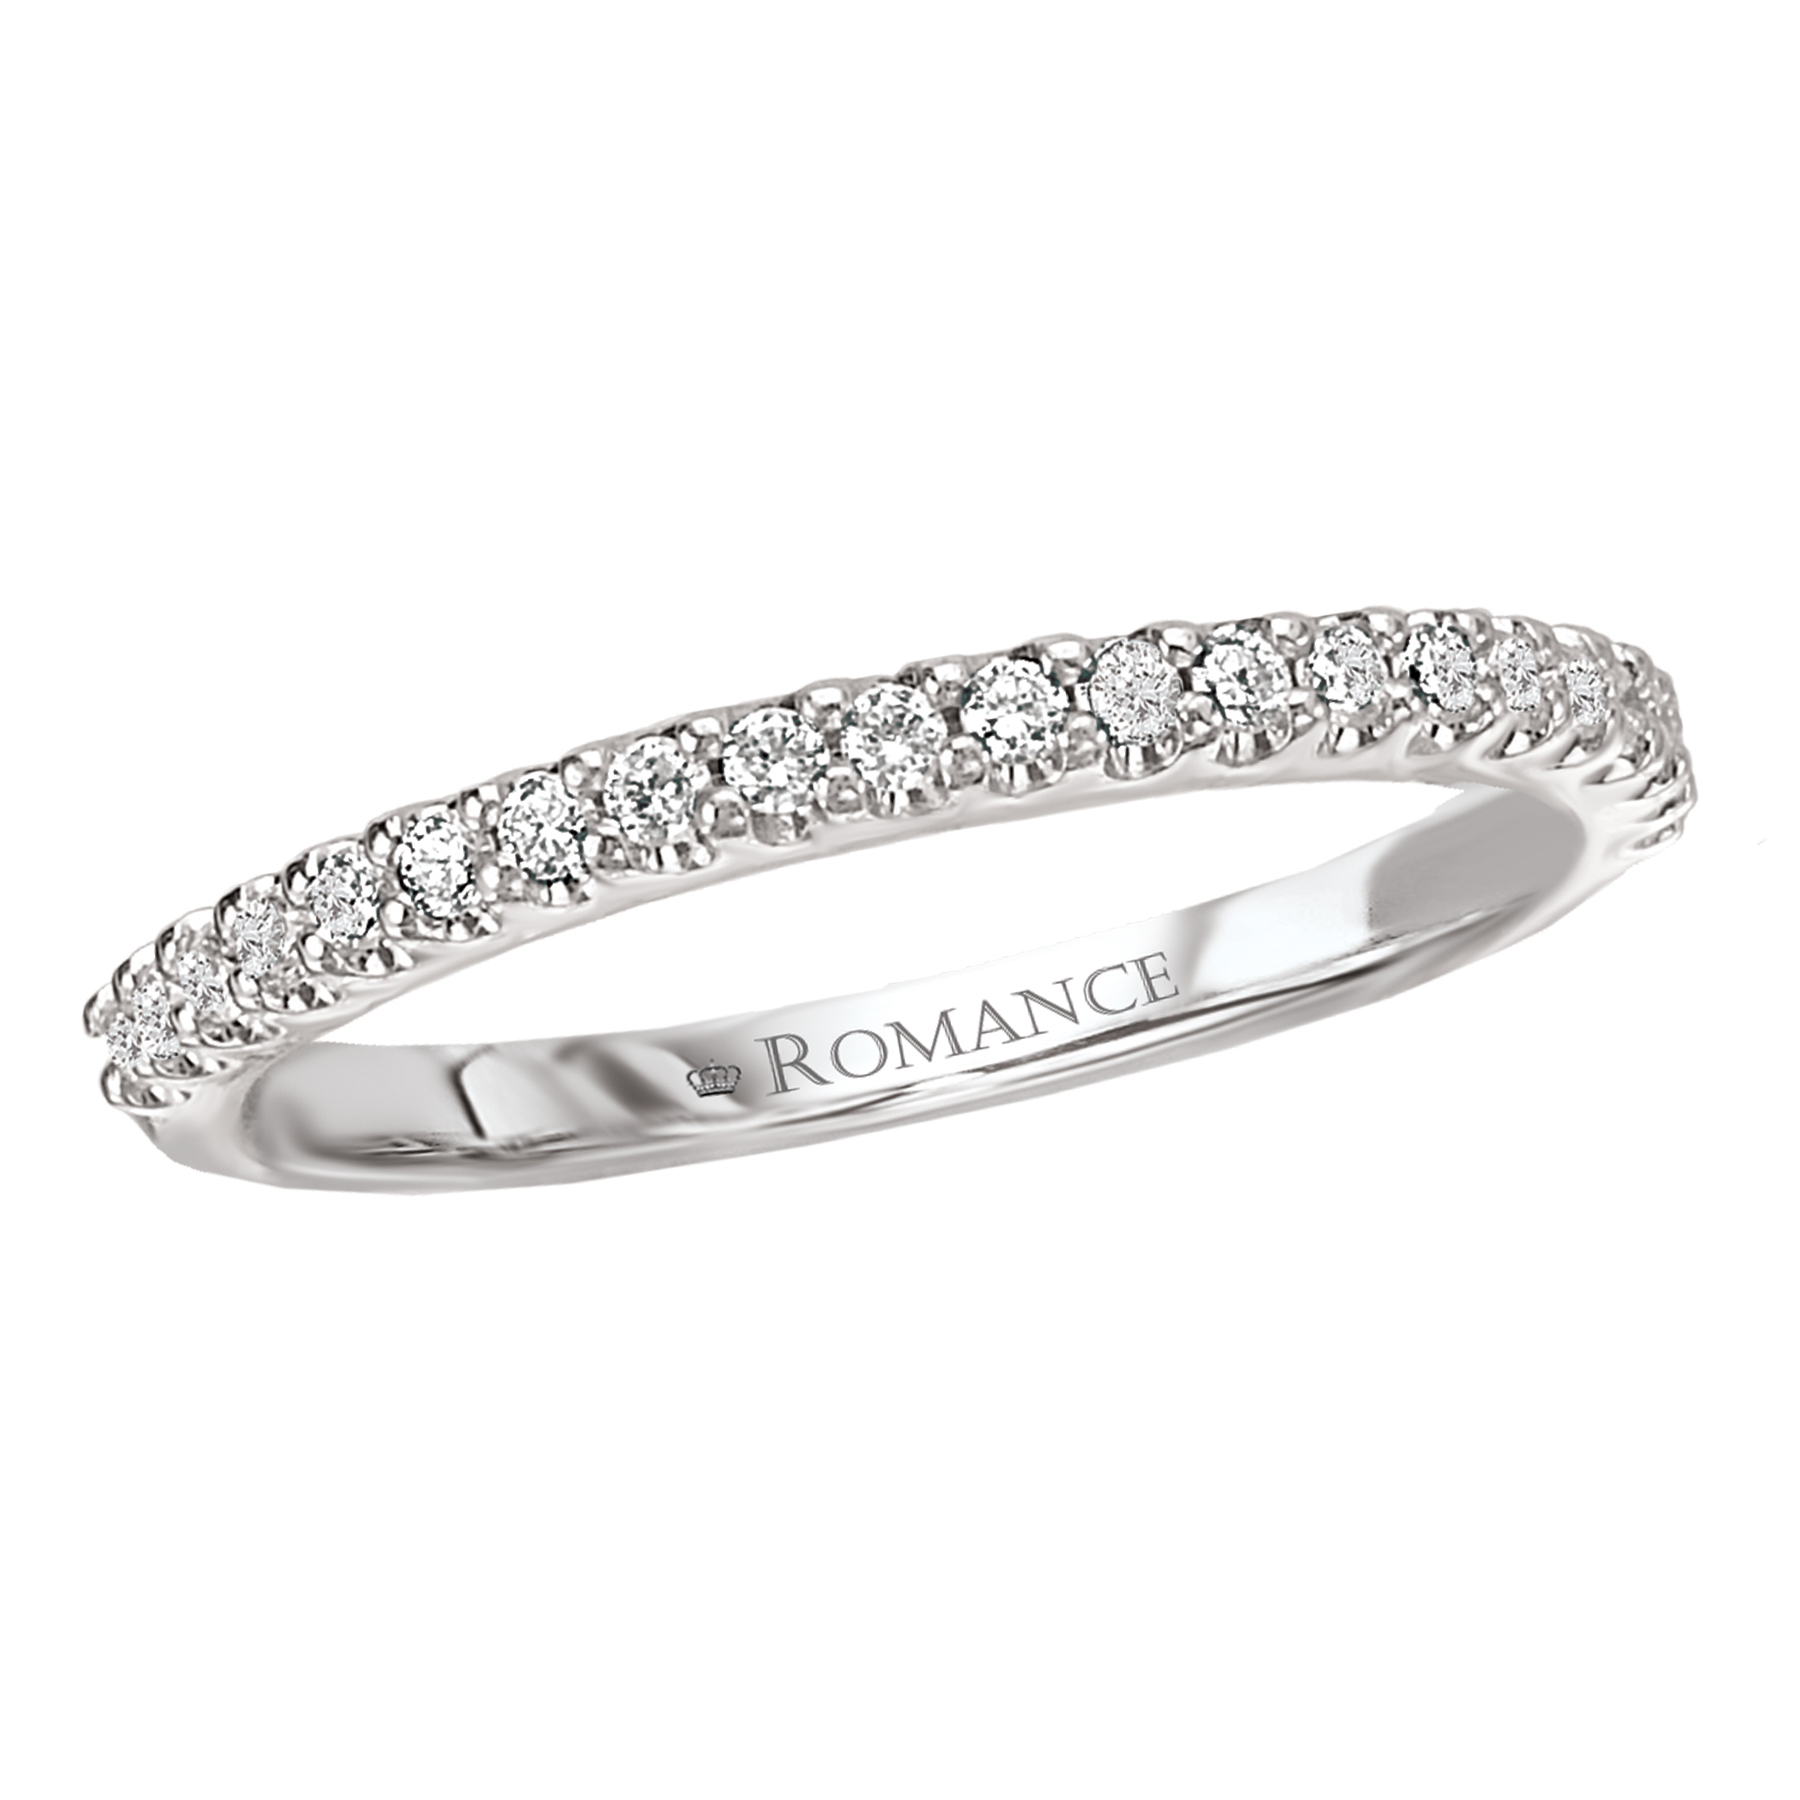 Romance Wedding Bands 118011-W product image